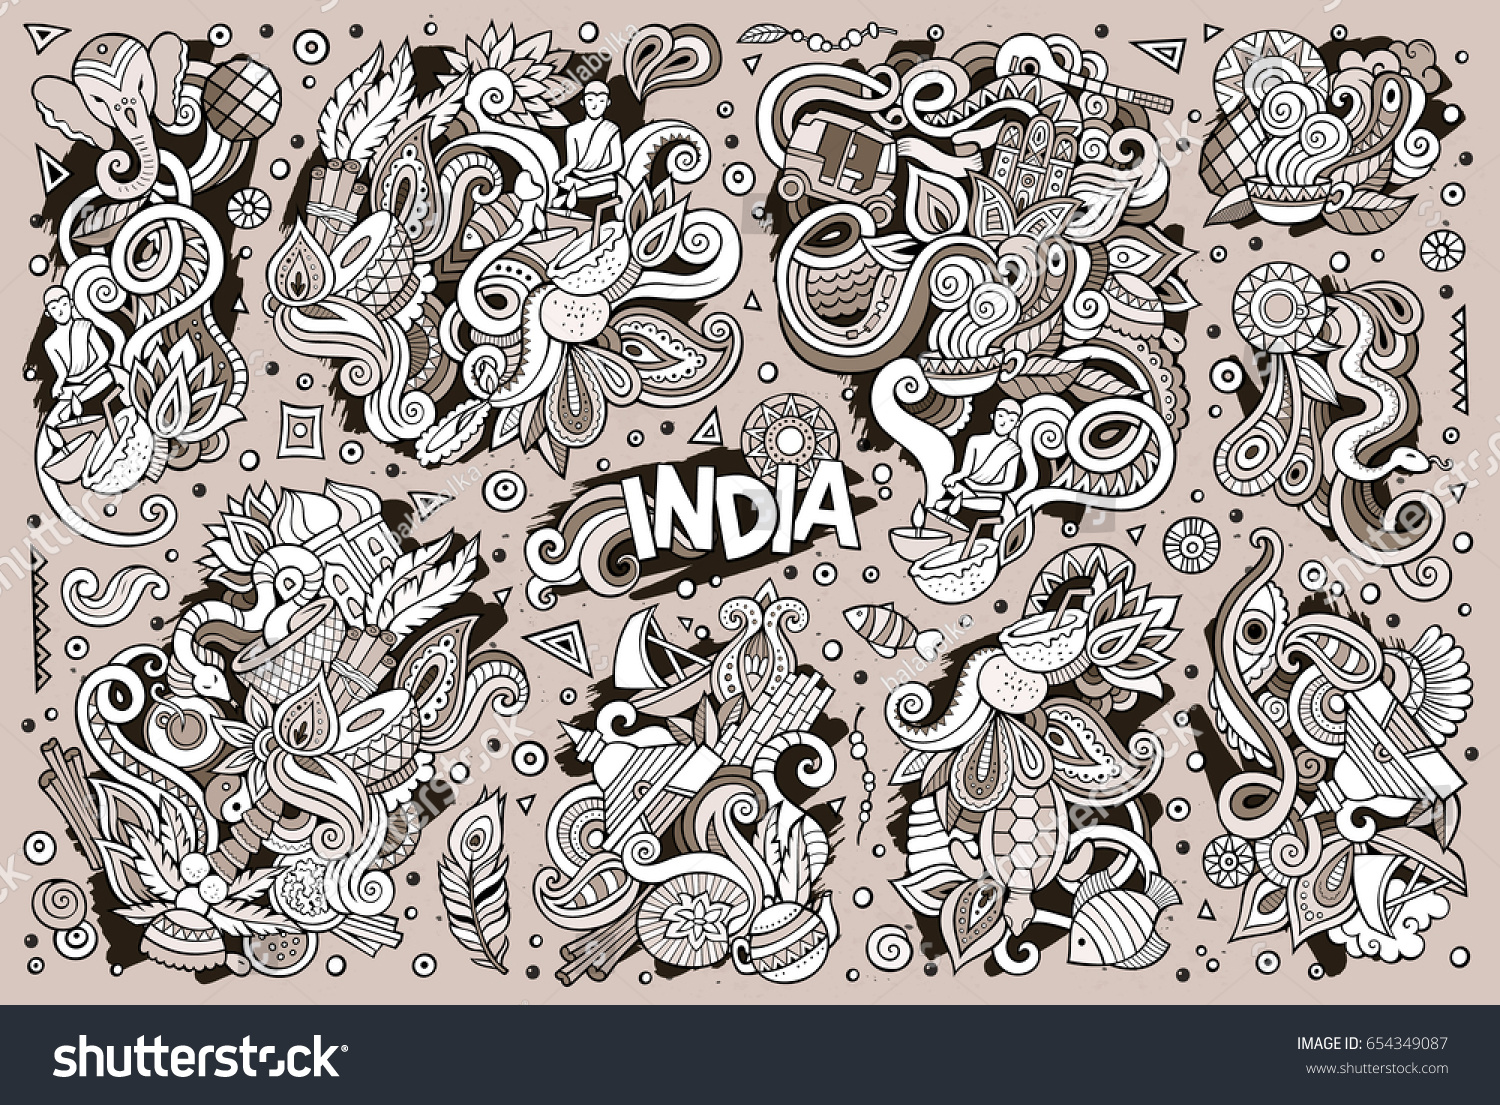 Sketchy vector hand drawn doodle cartoon stock vector 654349087 sketchy vector hand drawn doodle cartoon set of indian objects and symbols designs buycottarizona